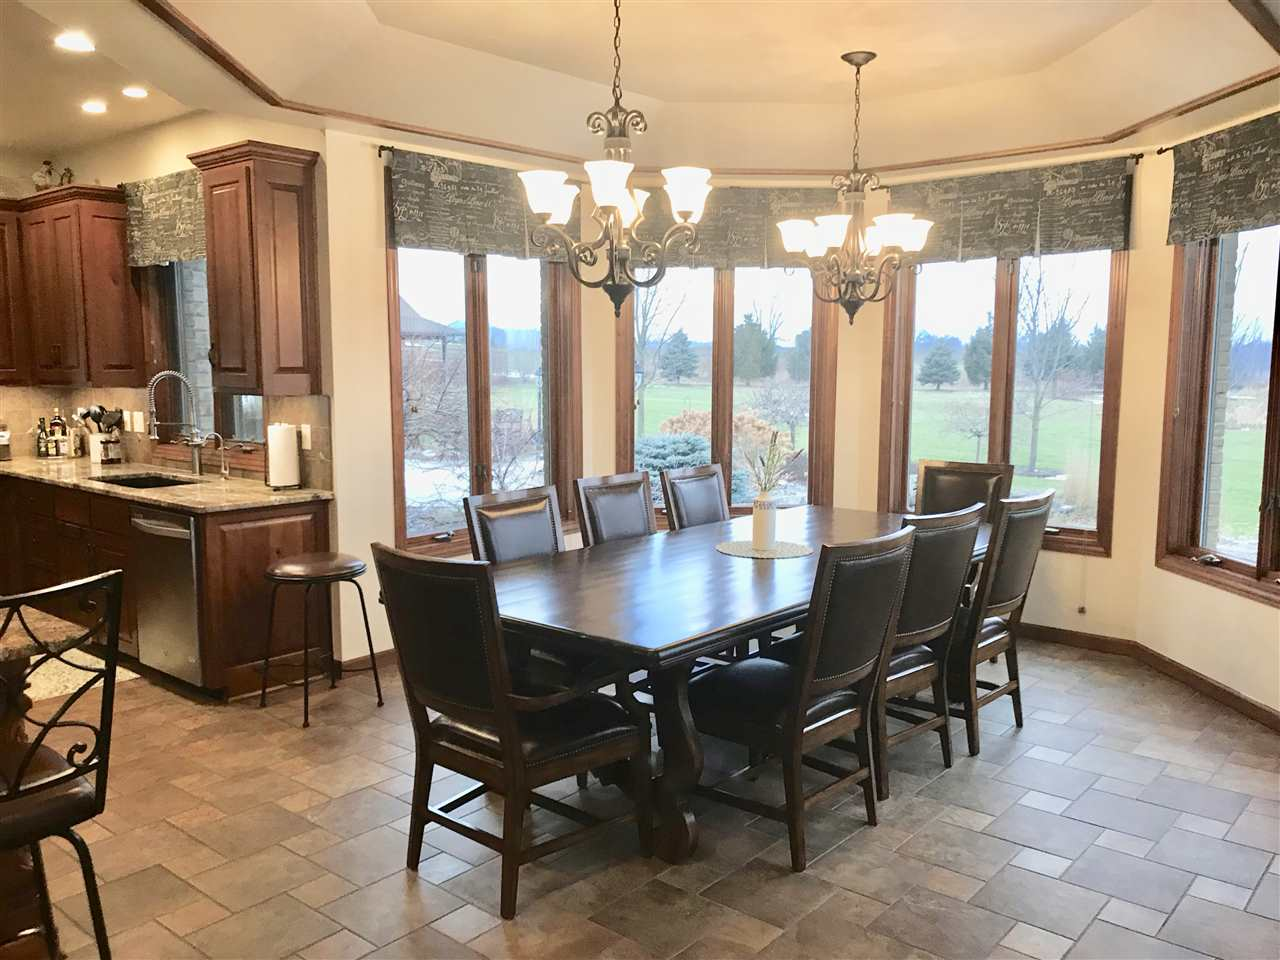 W3586 EQUESTRIAN Trail, APPLETON, Wisconsin 54913-9109, 5 Bedrooms Bedrooms, ,5 BathroomsBathrooms,Residential,EQUESTRIAN,50195935